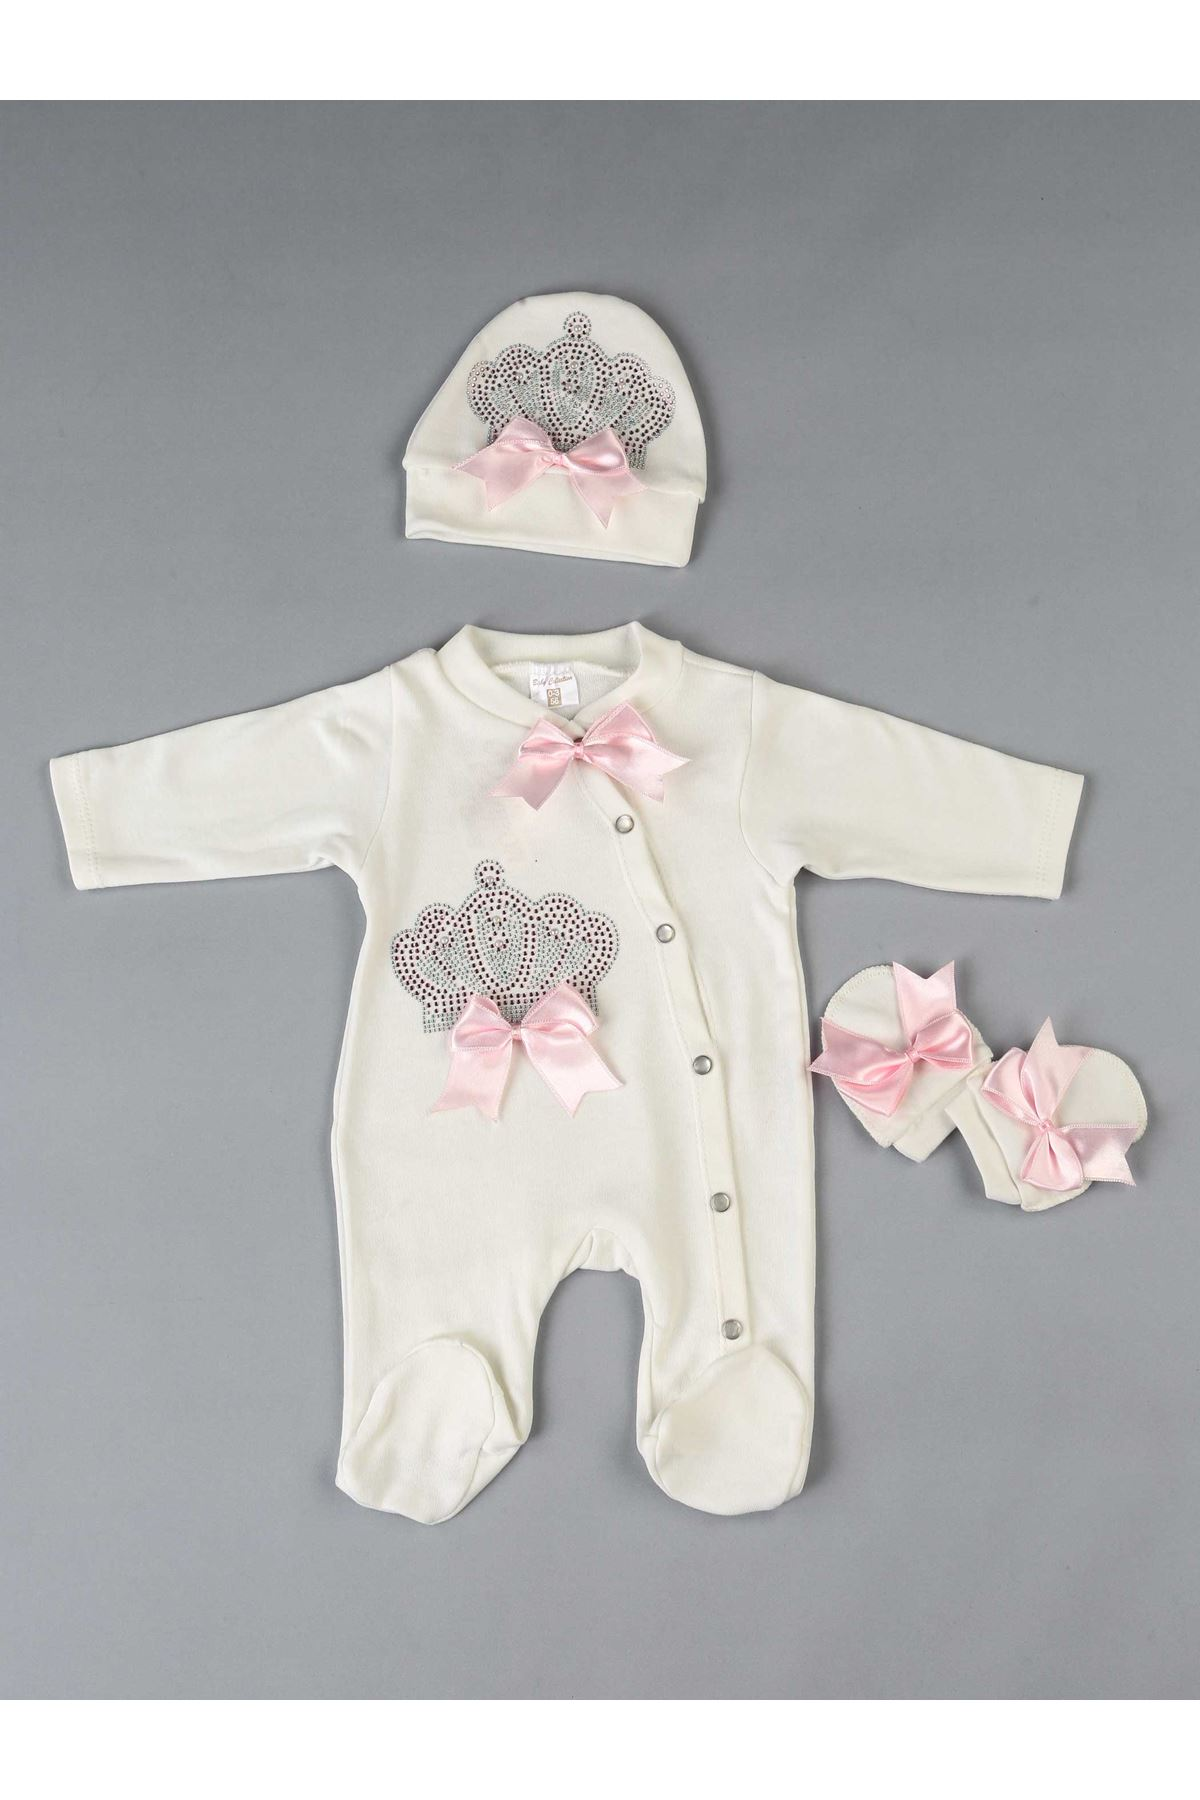 Pink Baby rompers girls boys newborn clothes 3 pcs set cotton soft antiallergic fabric for newborn babies of kinds clothing